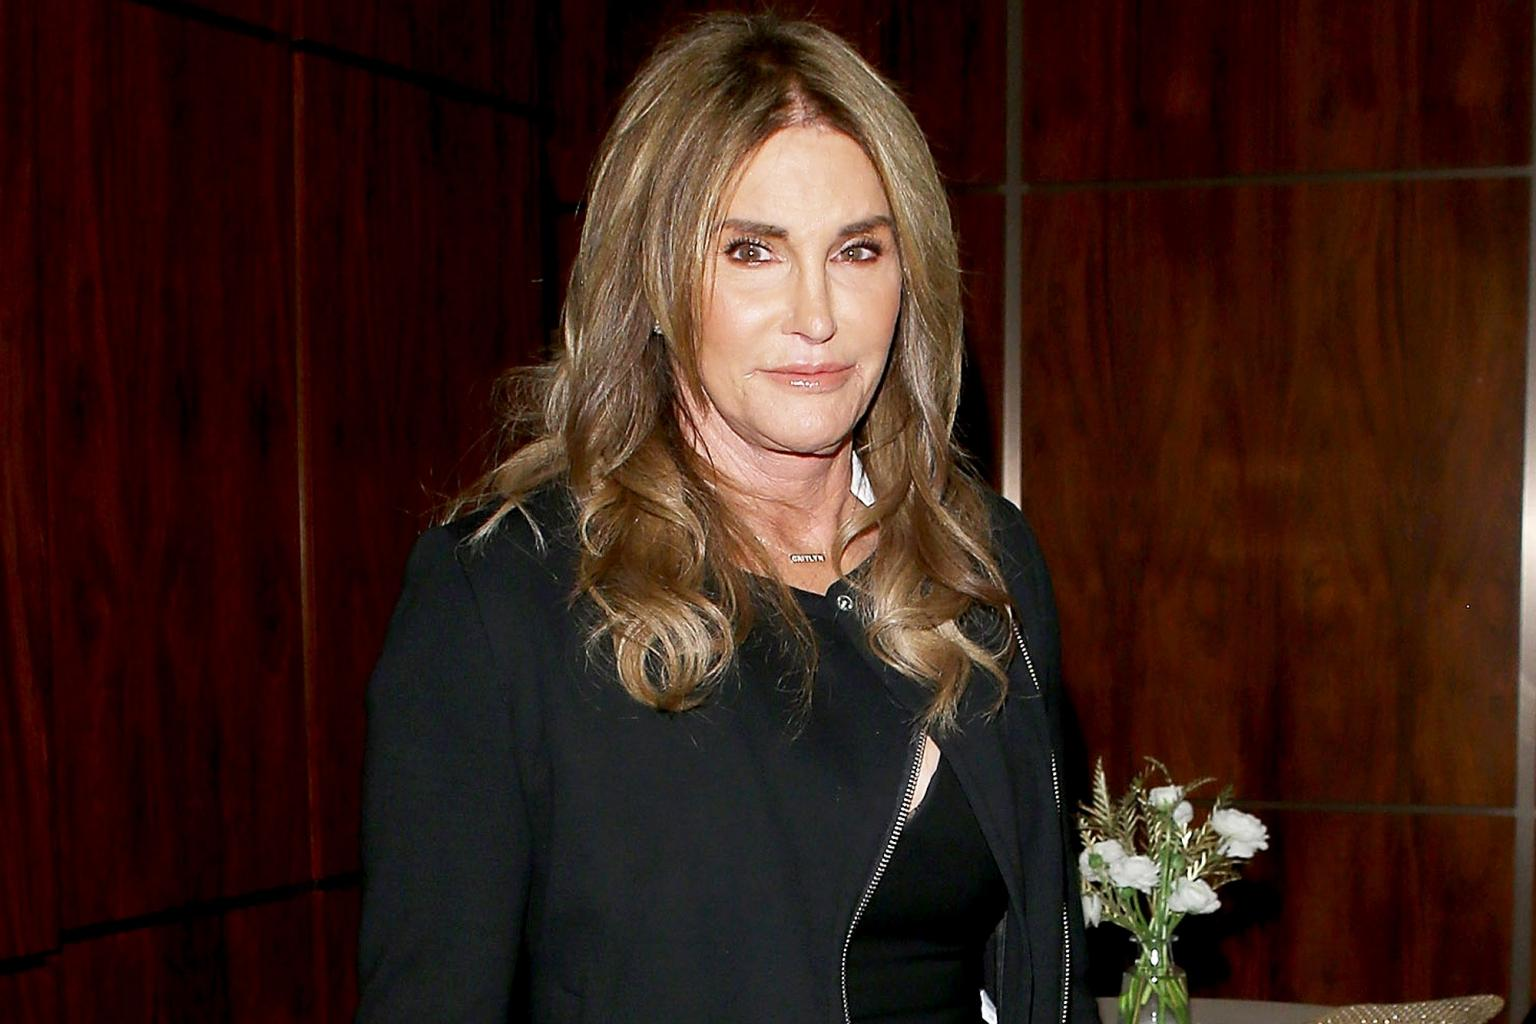 Caitlyn Jenner Had Sex Reassigment Surgery, She Reveals in New Memoir